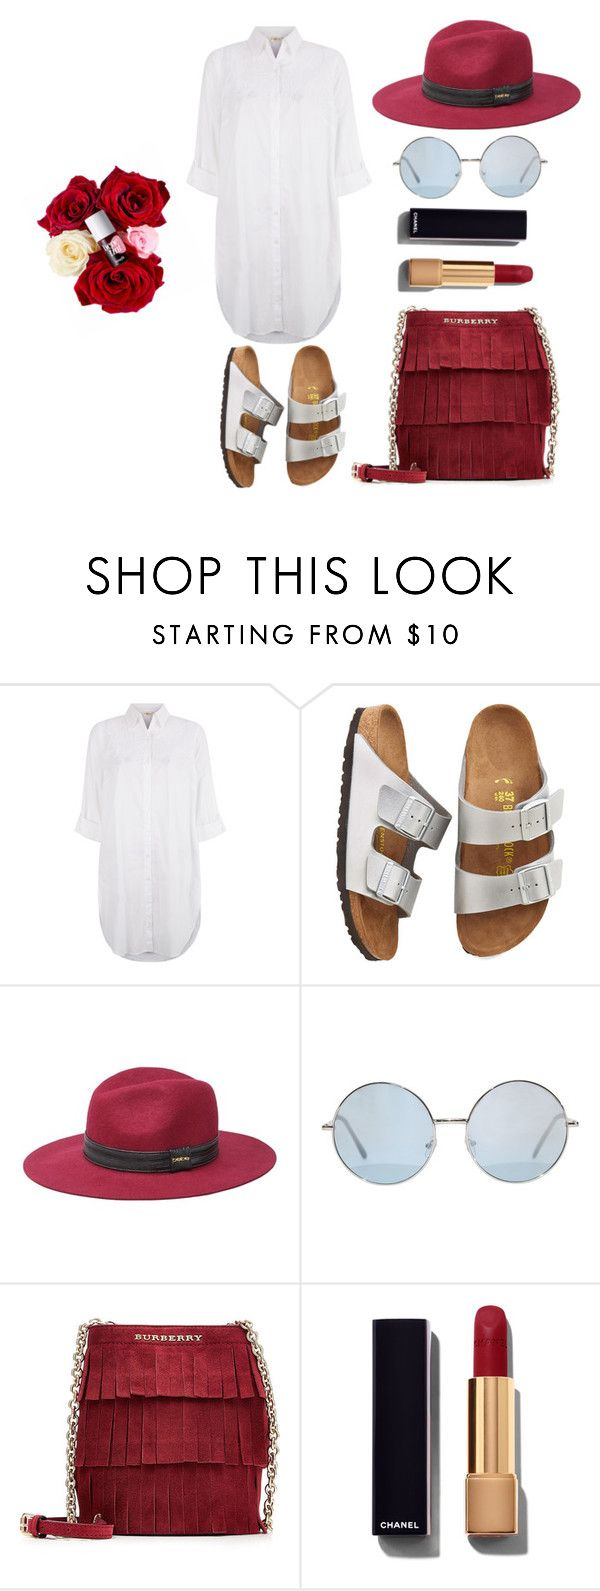 """BirkenStyle"" by taniamandavela on Polyvore featuring Monsoon, Birkenstock, Bebe, Burberry, Chanel, women's clothing, women's fashion, women, female and woman"